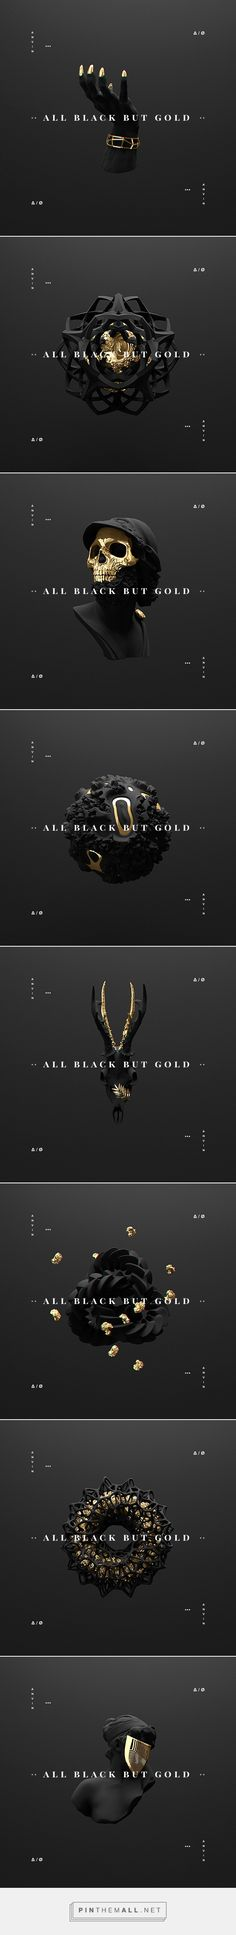 All black but gold on Behance... - a grouped images picture